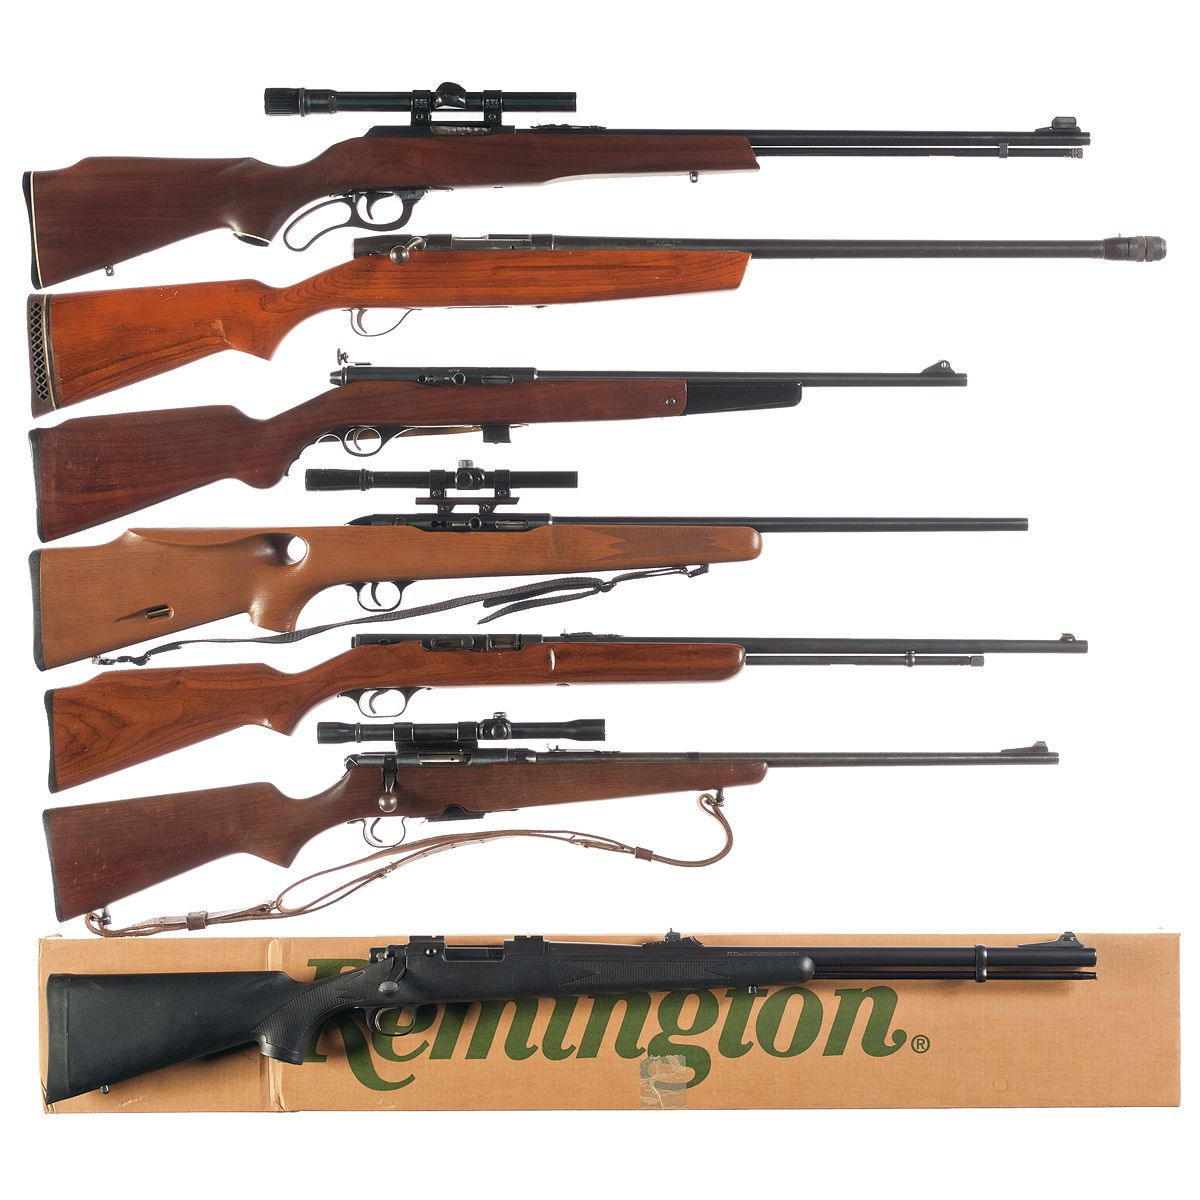 Amazing Marlin Rifle Pictures & Backgrounds